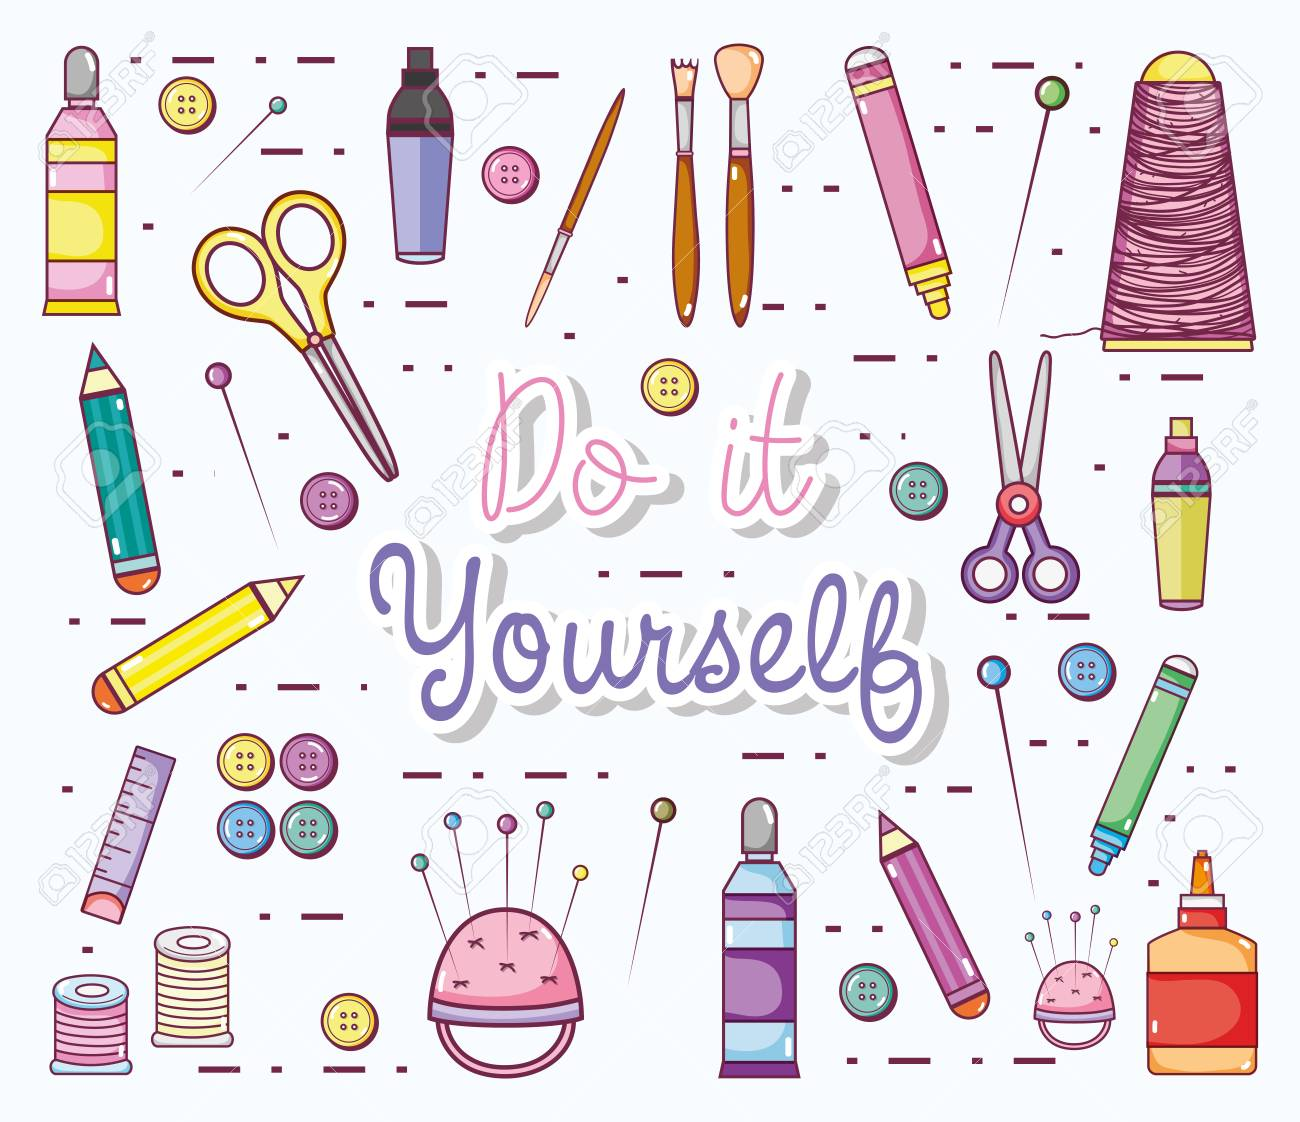 Do It Yourself Cartoons With Craft Supplies Vector Illustration Royalty Free Cliparts Vectors And Stock Illustration Image 100314864